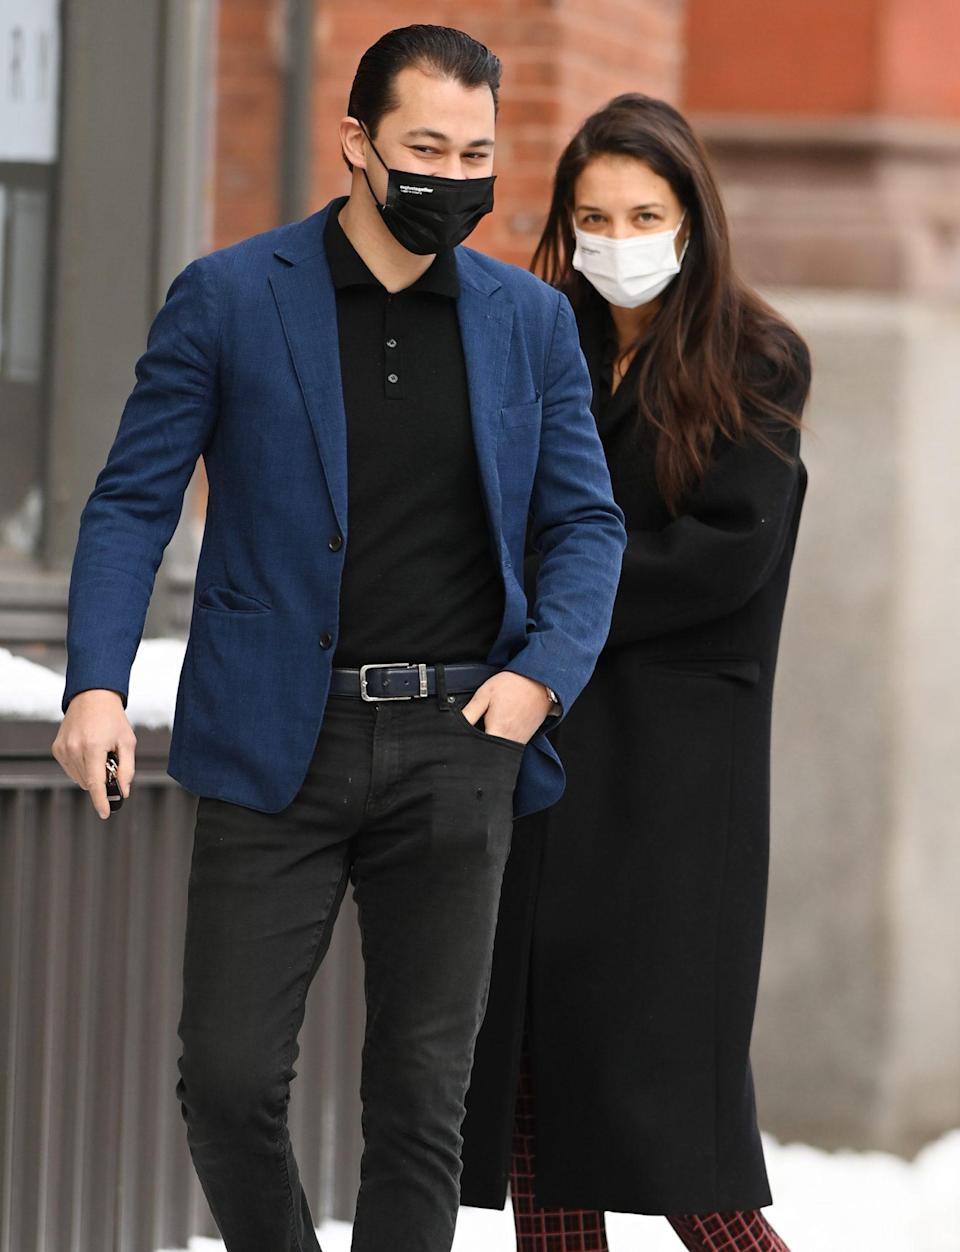 <p>Katie Holmes and boyfriend Emilio Vitolo Jr. share smiles from behind their masks on Friday as they step out on her birthday in N.Y.C.</p>